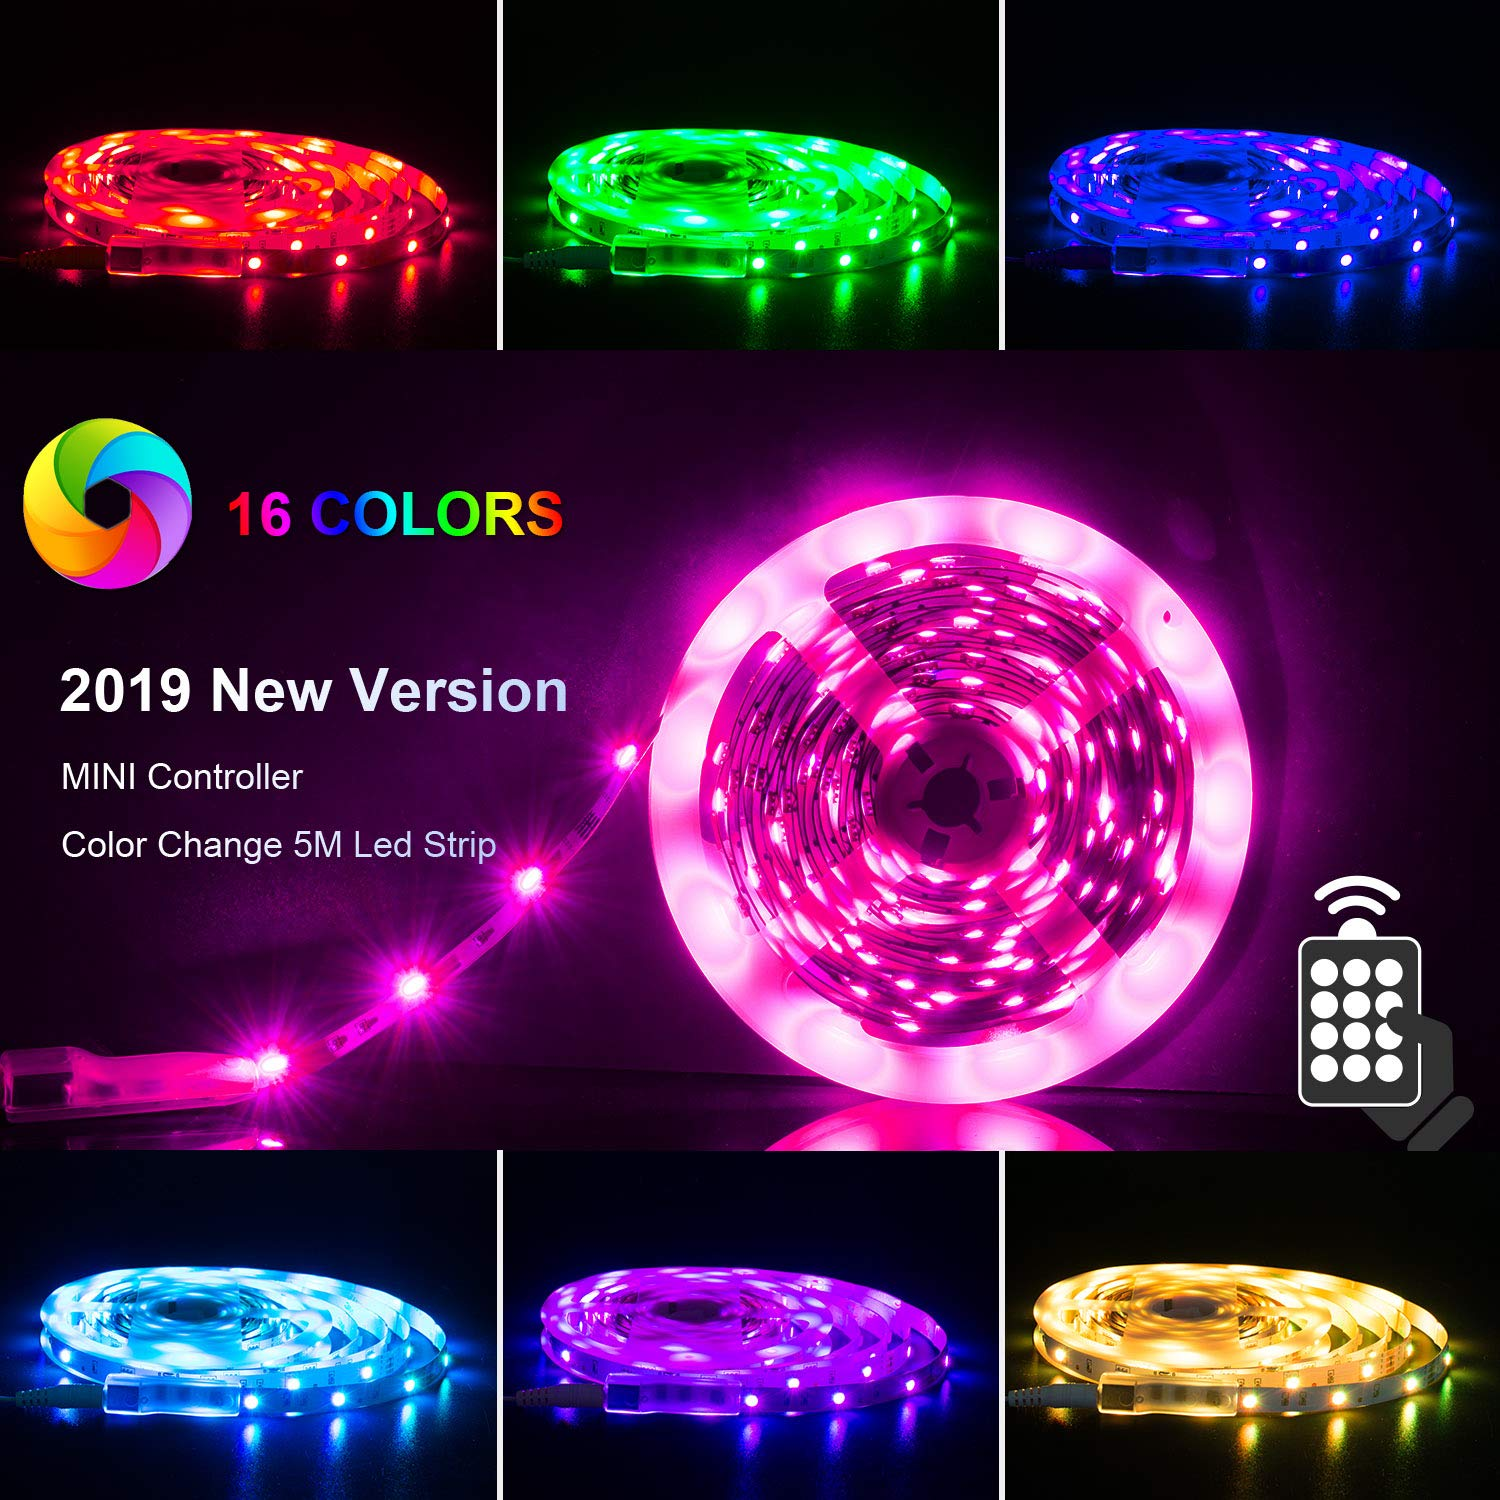 LED Strips Lights 5m [Newest 2019], RGB 5050 LEDs Colour Changing Kit with  24key Remote Control and Power Supply, Mood Lighting Led Strips for Home